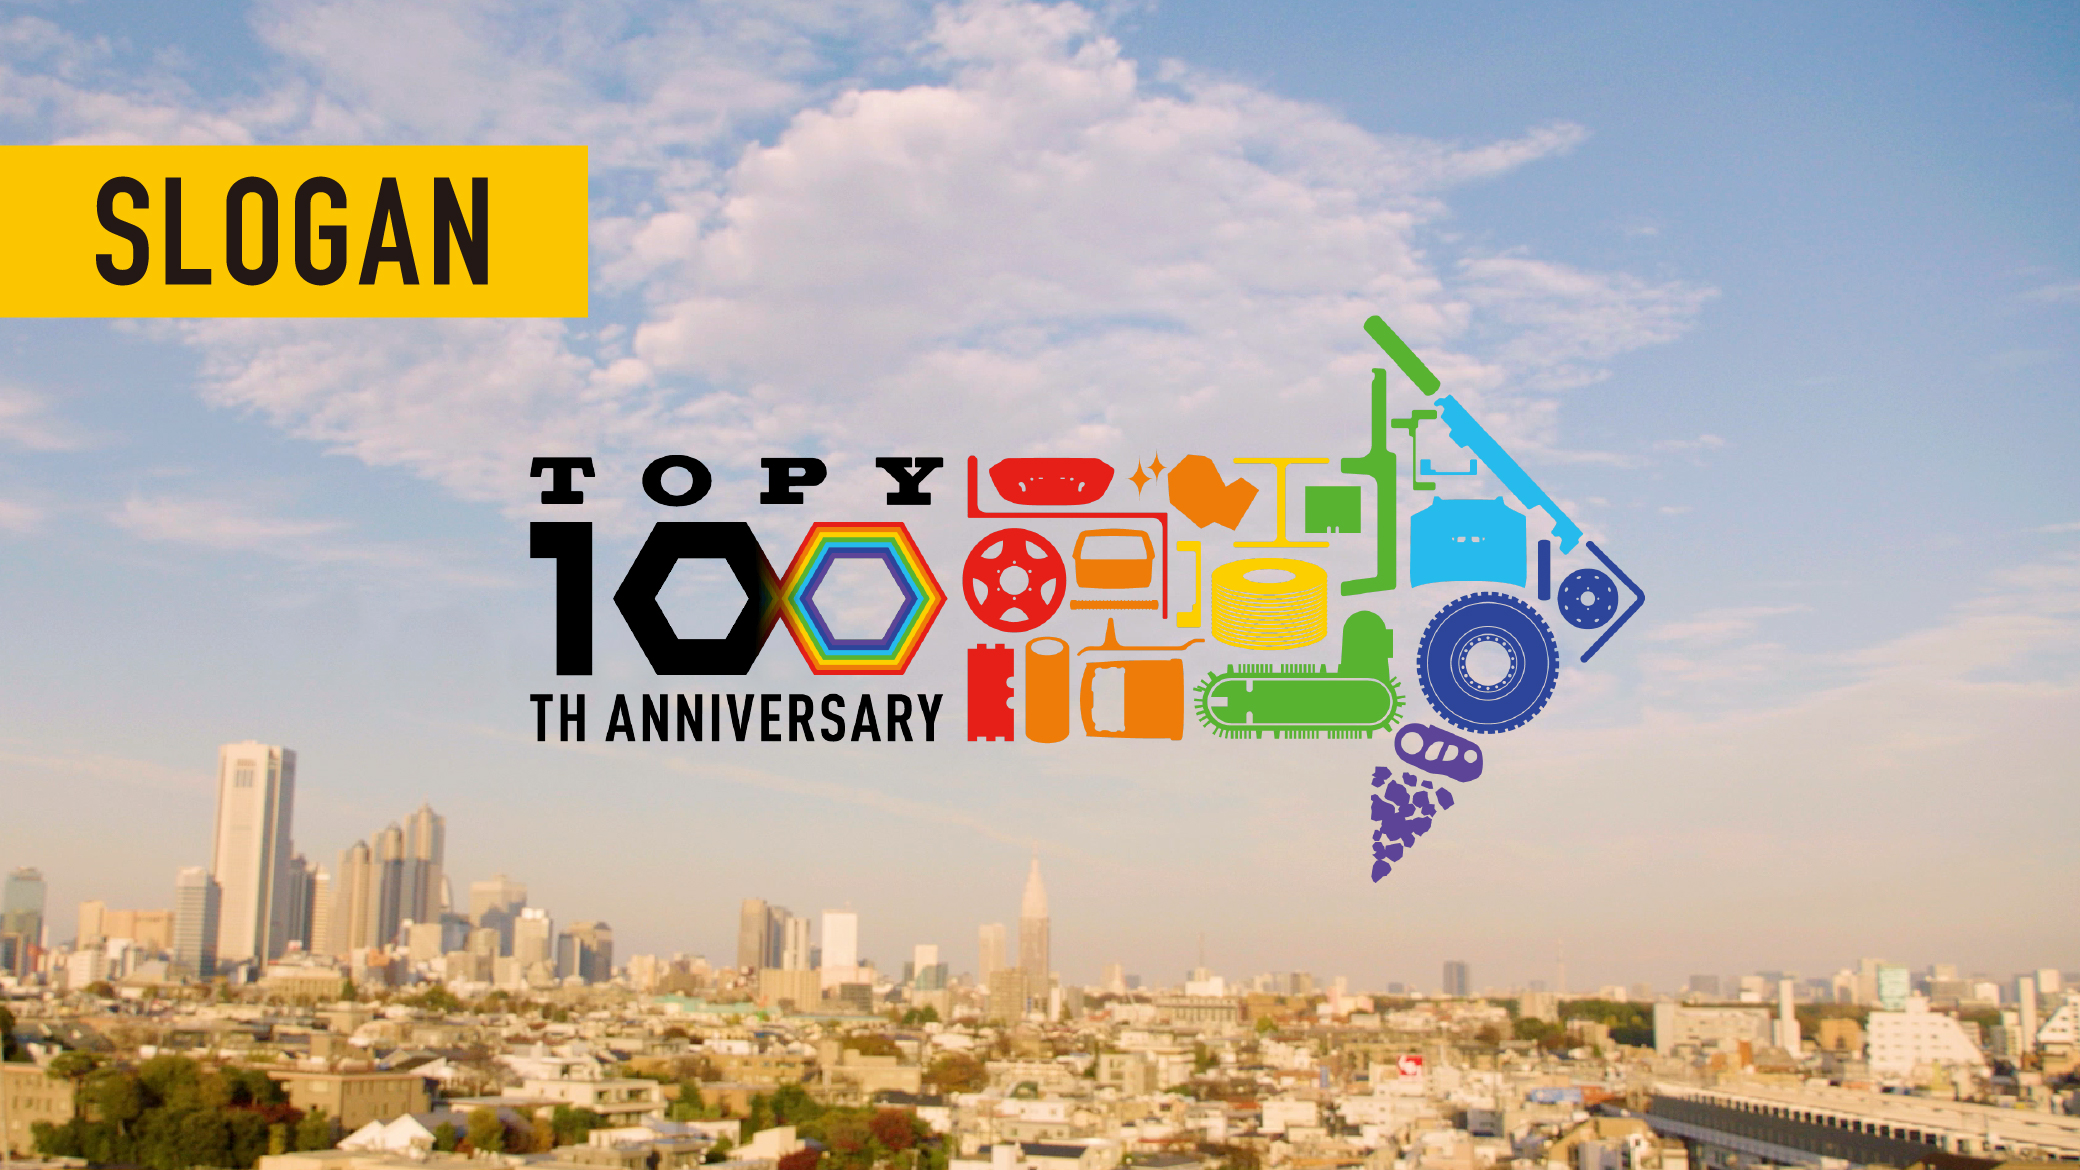 MESSAGE TOPY 100TH ANIVERSARY